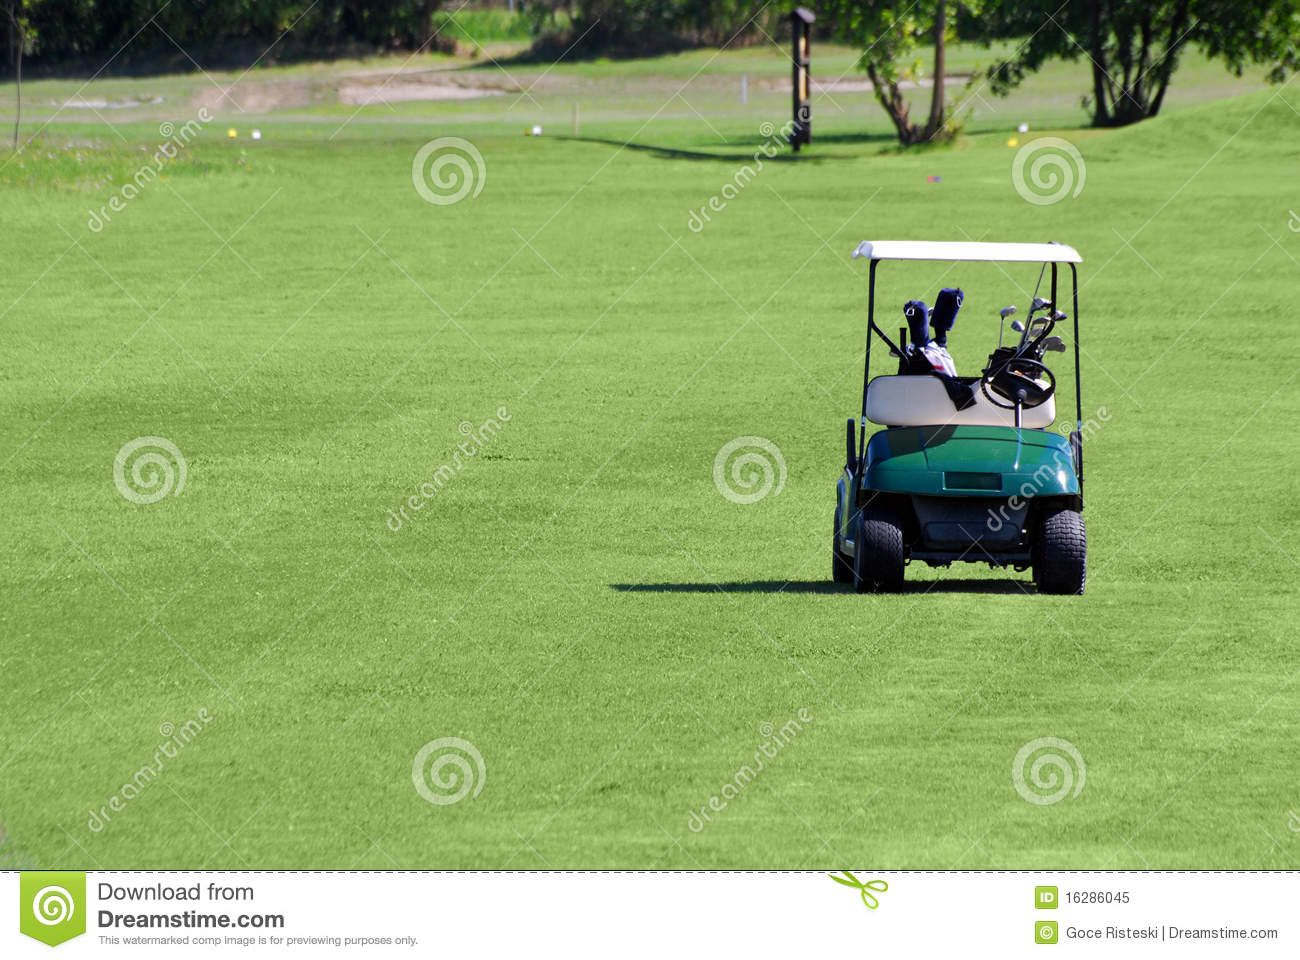 Buggy do golfe no campo do golfe